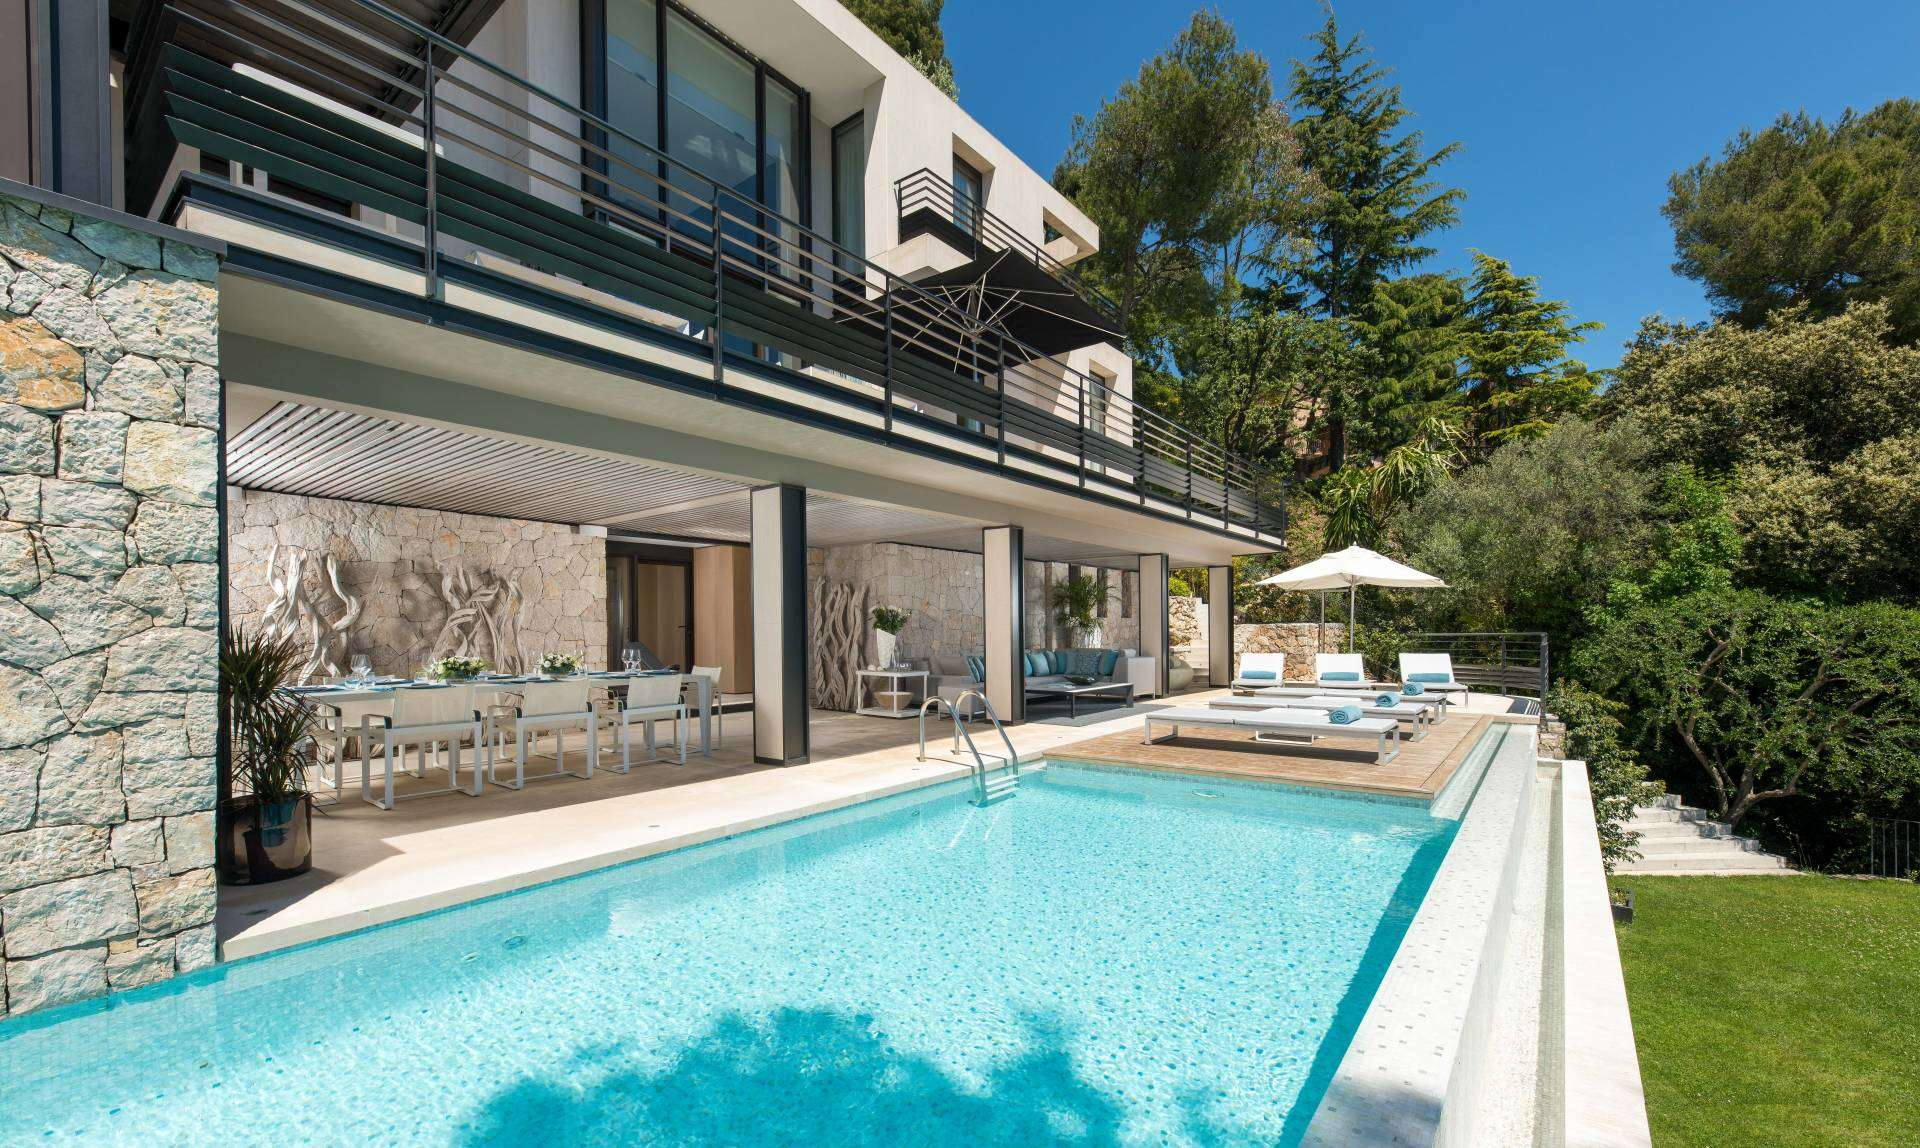 Luxury vacation rentals europe - France - Frenchriviera - Saint jean cap ferrat - Villa The View - Image 1/26